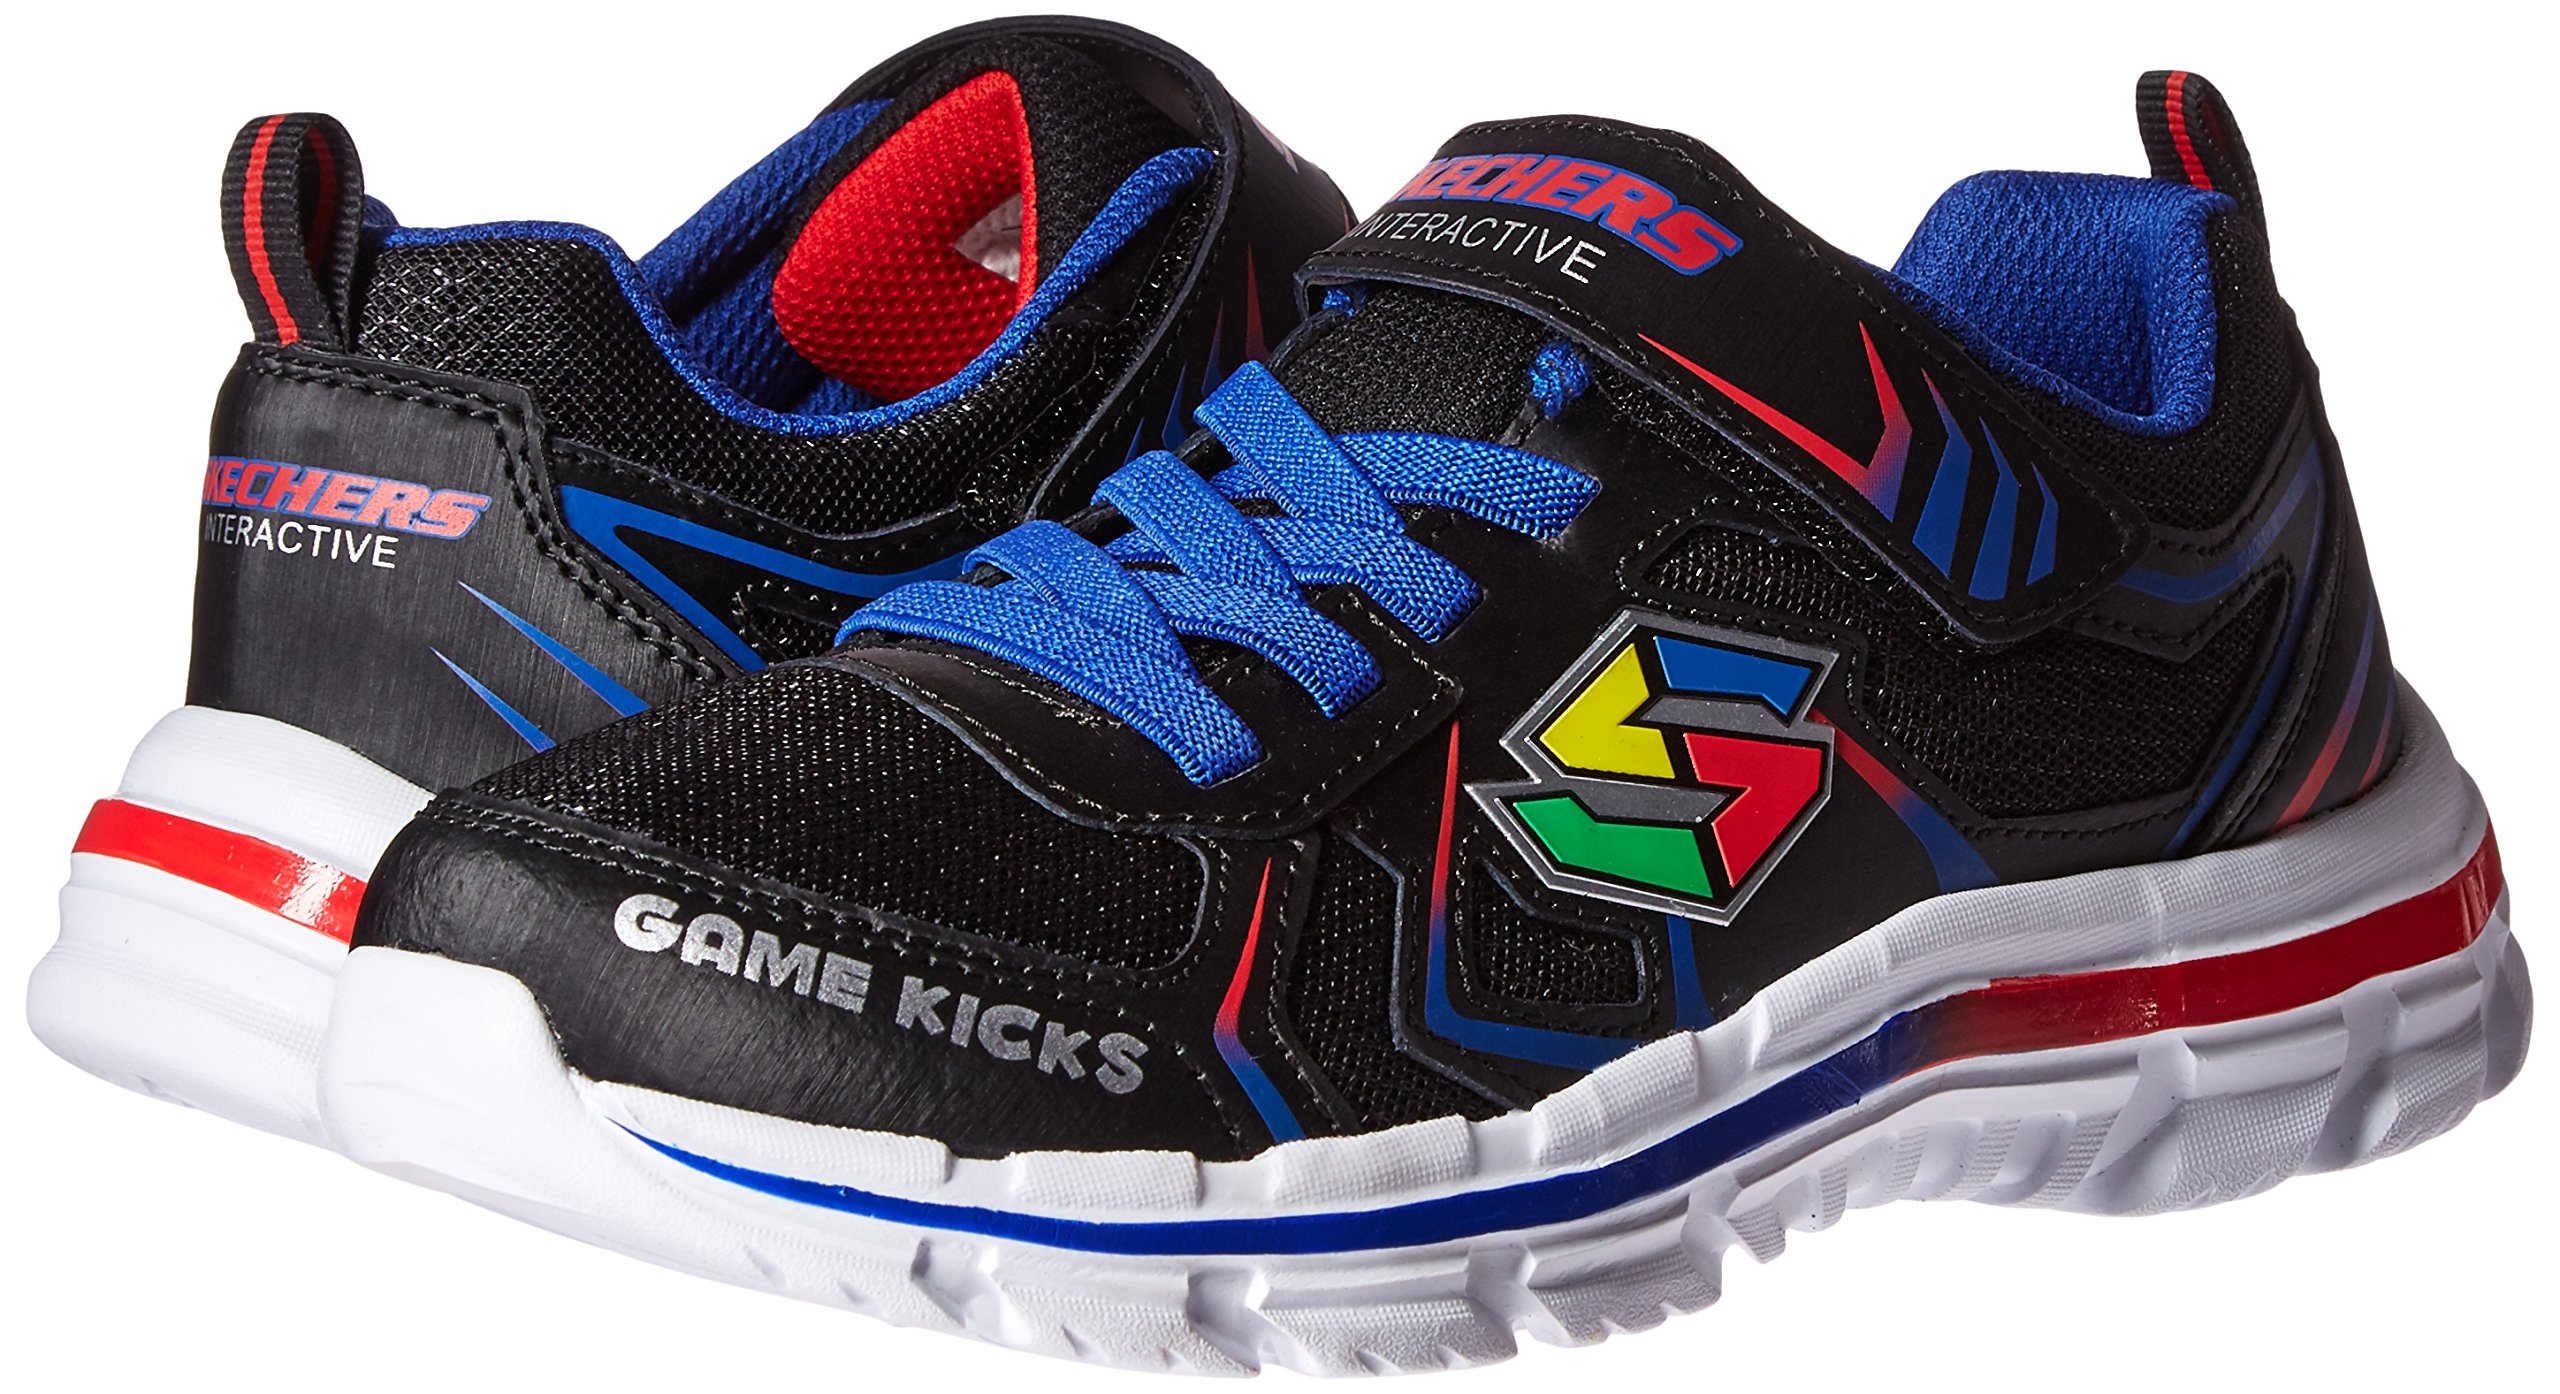 Skechers Kids Nitrate Game Kicks Og Chu Buy Online In Antigua And Barbuda At Desertcart